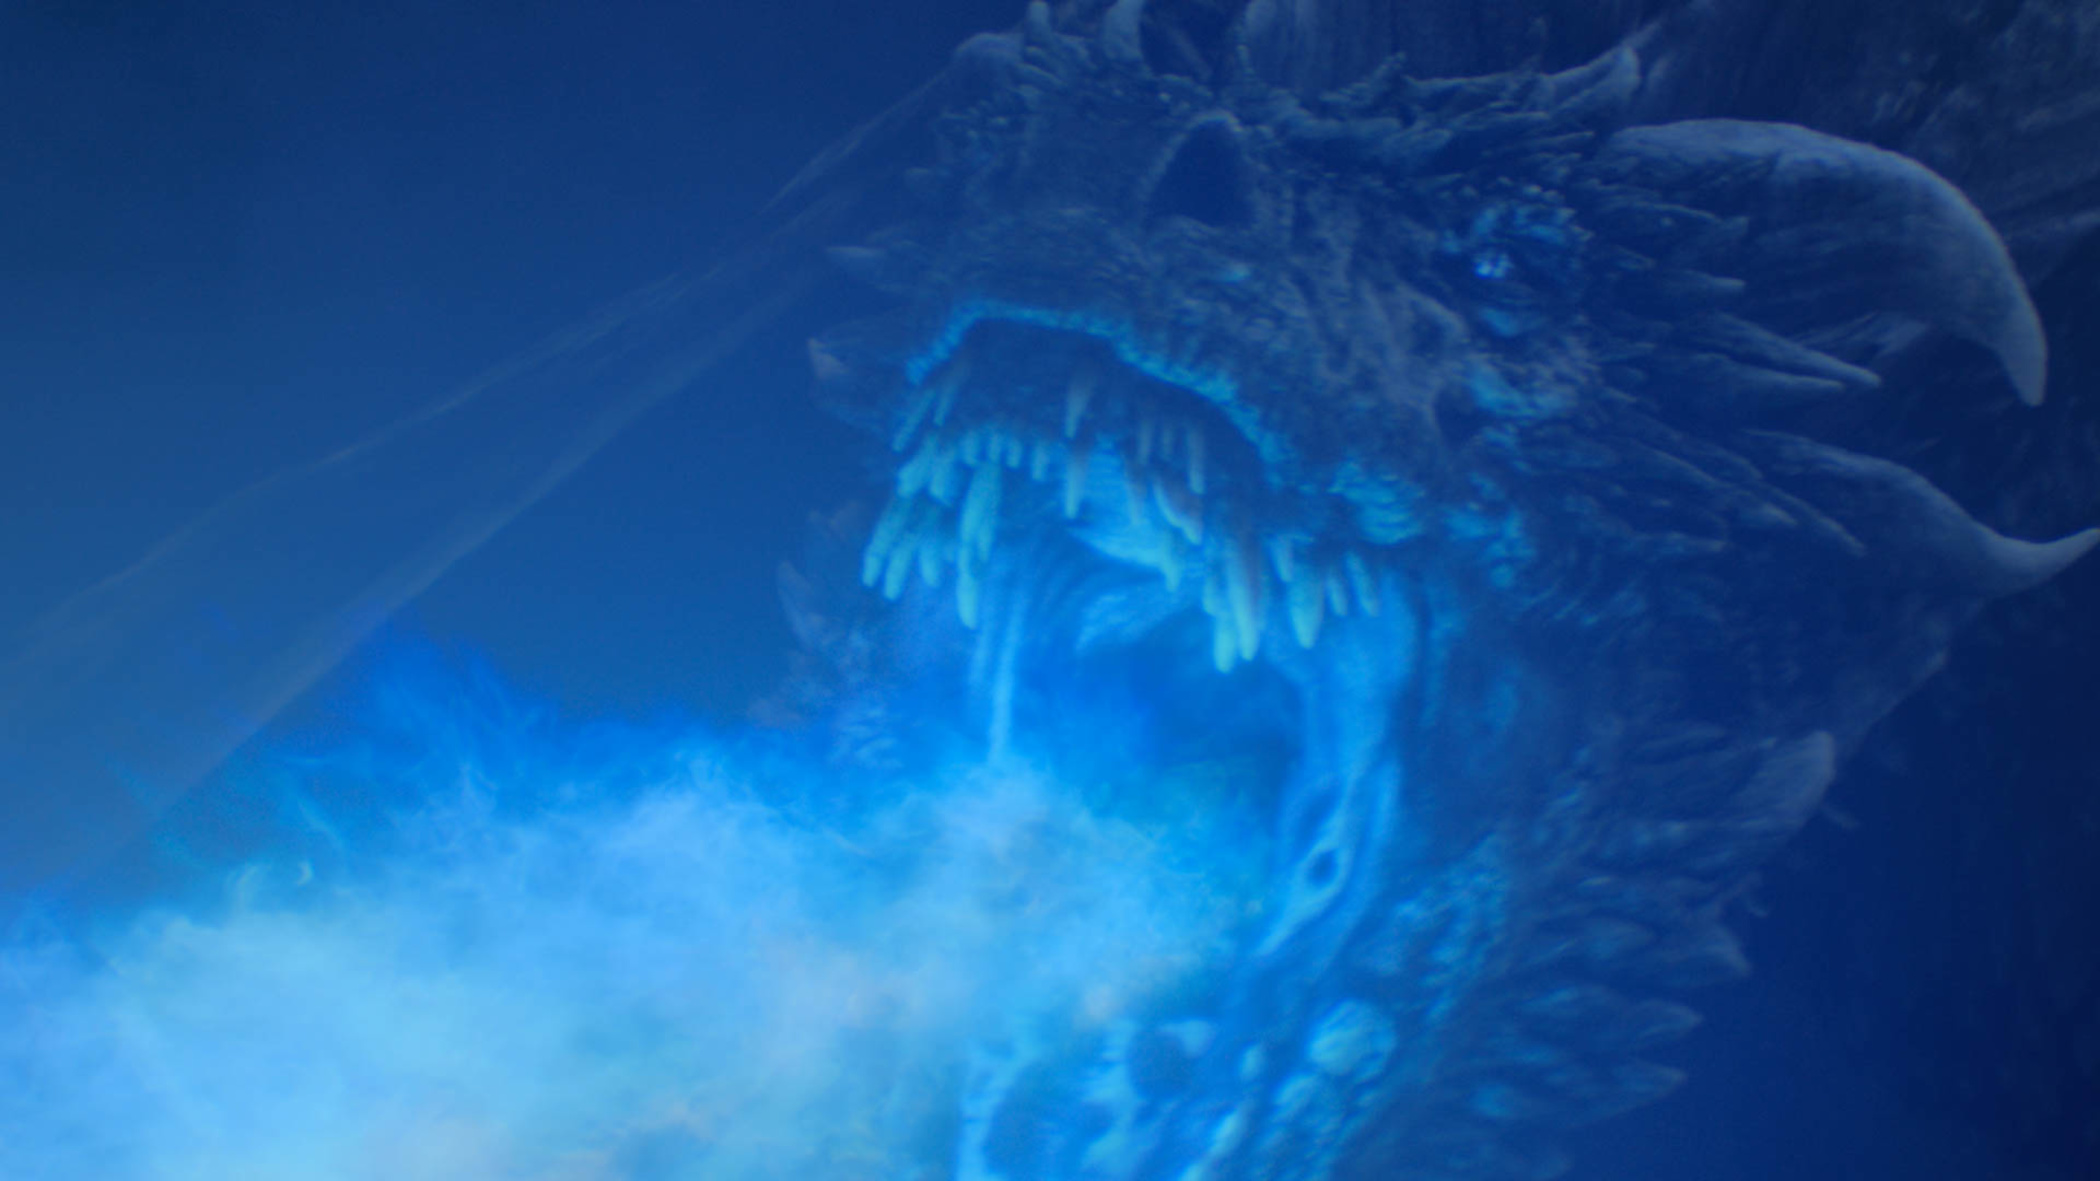 Viserion fights the living dragons in the Battle of Winterfell on Game of Thrones season 8 episode 3